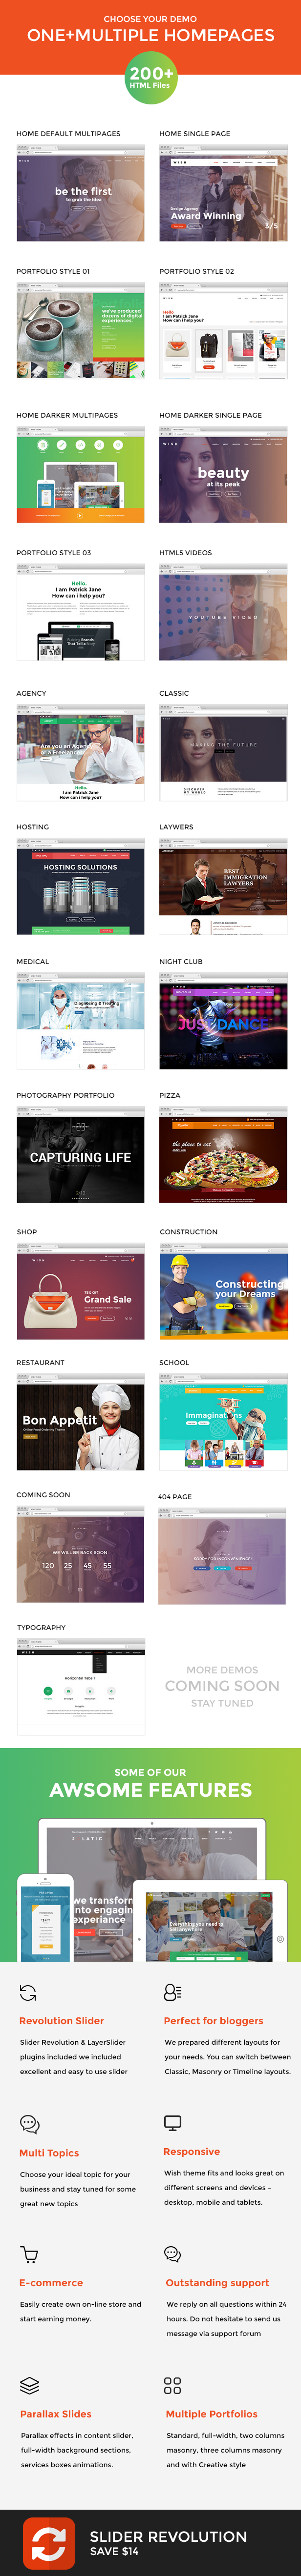 Wish-Multipurpose MultiPage + One Page - 7